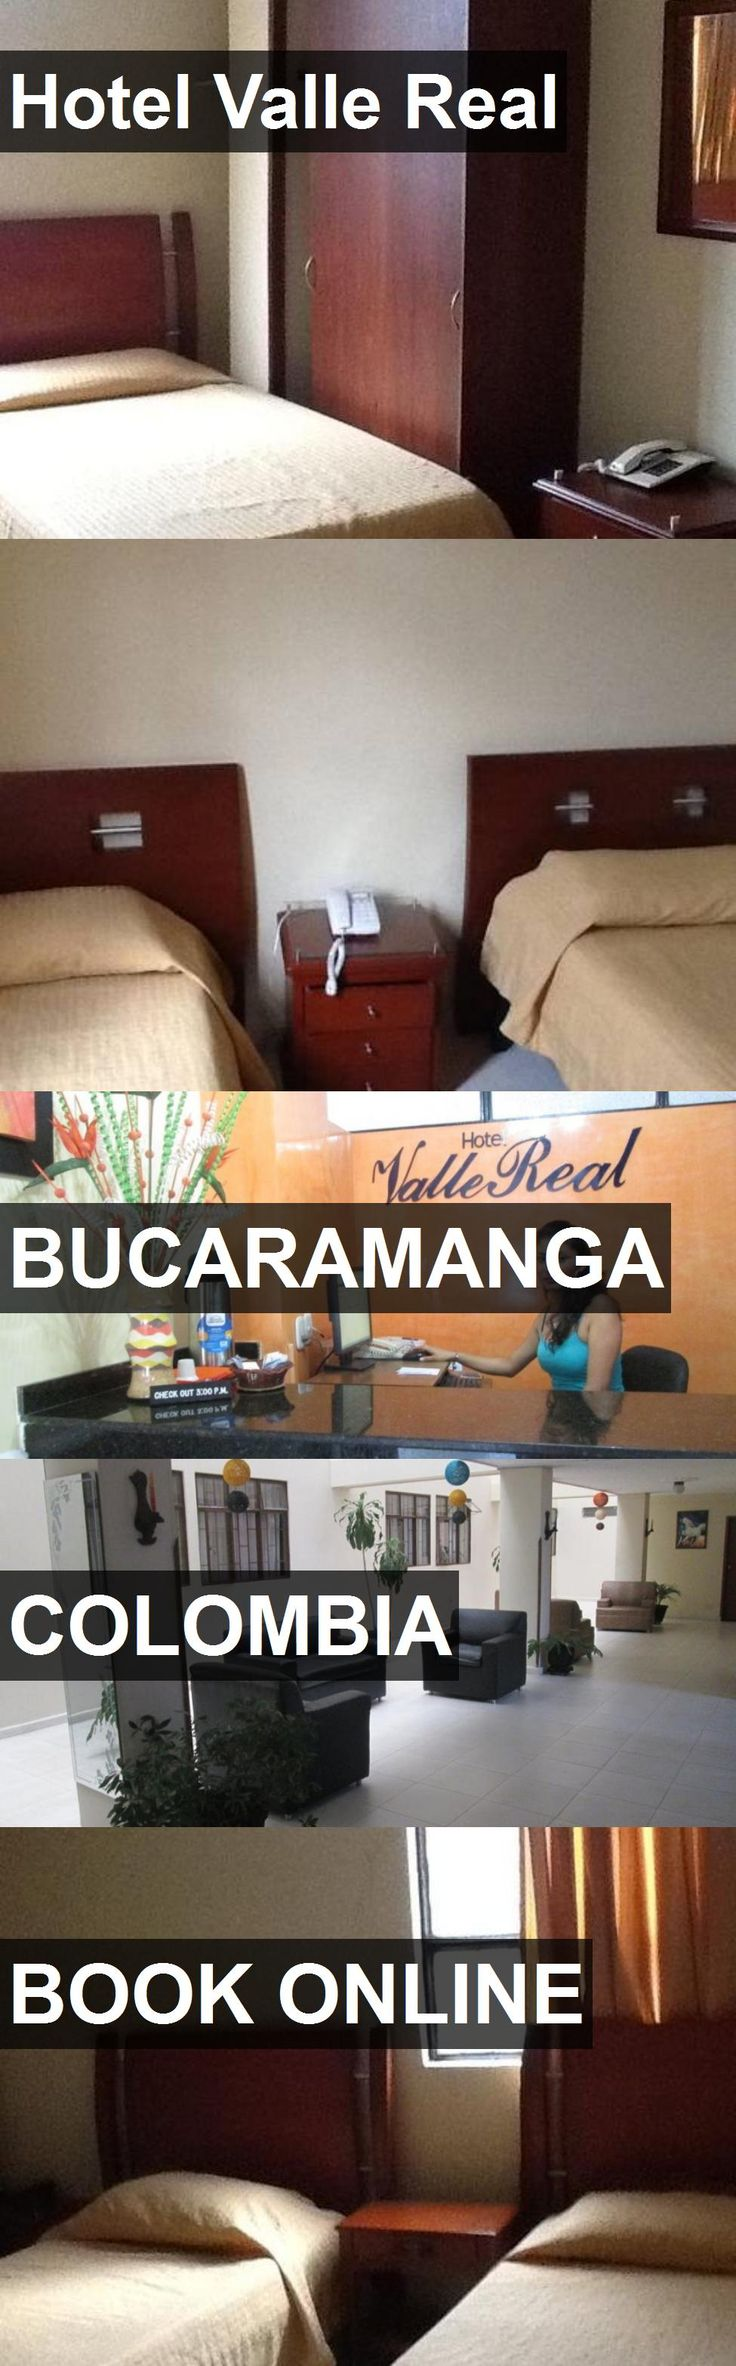 Hotel Valle Real in Bucaramanga, Colombia. For more information, photos, reviews and best prices please follow the link. #Colombia #Bucaramanga #travel #vacation #hotel